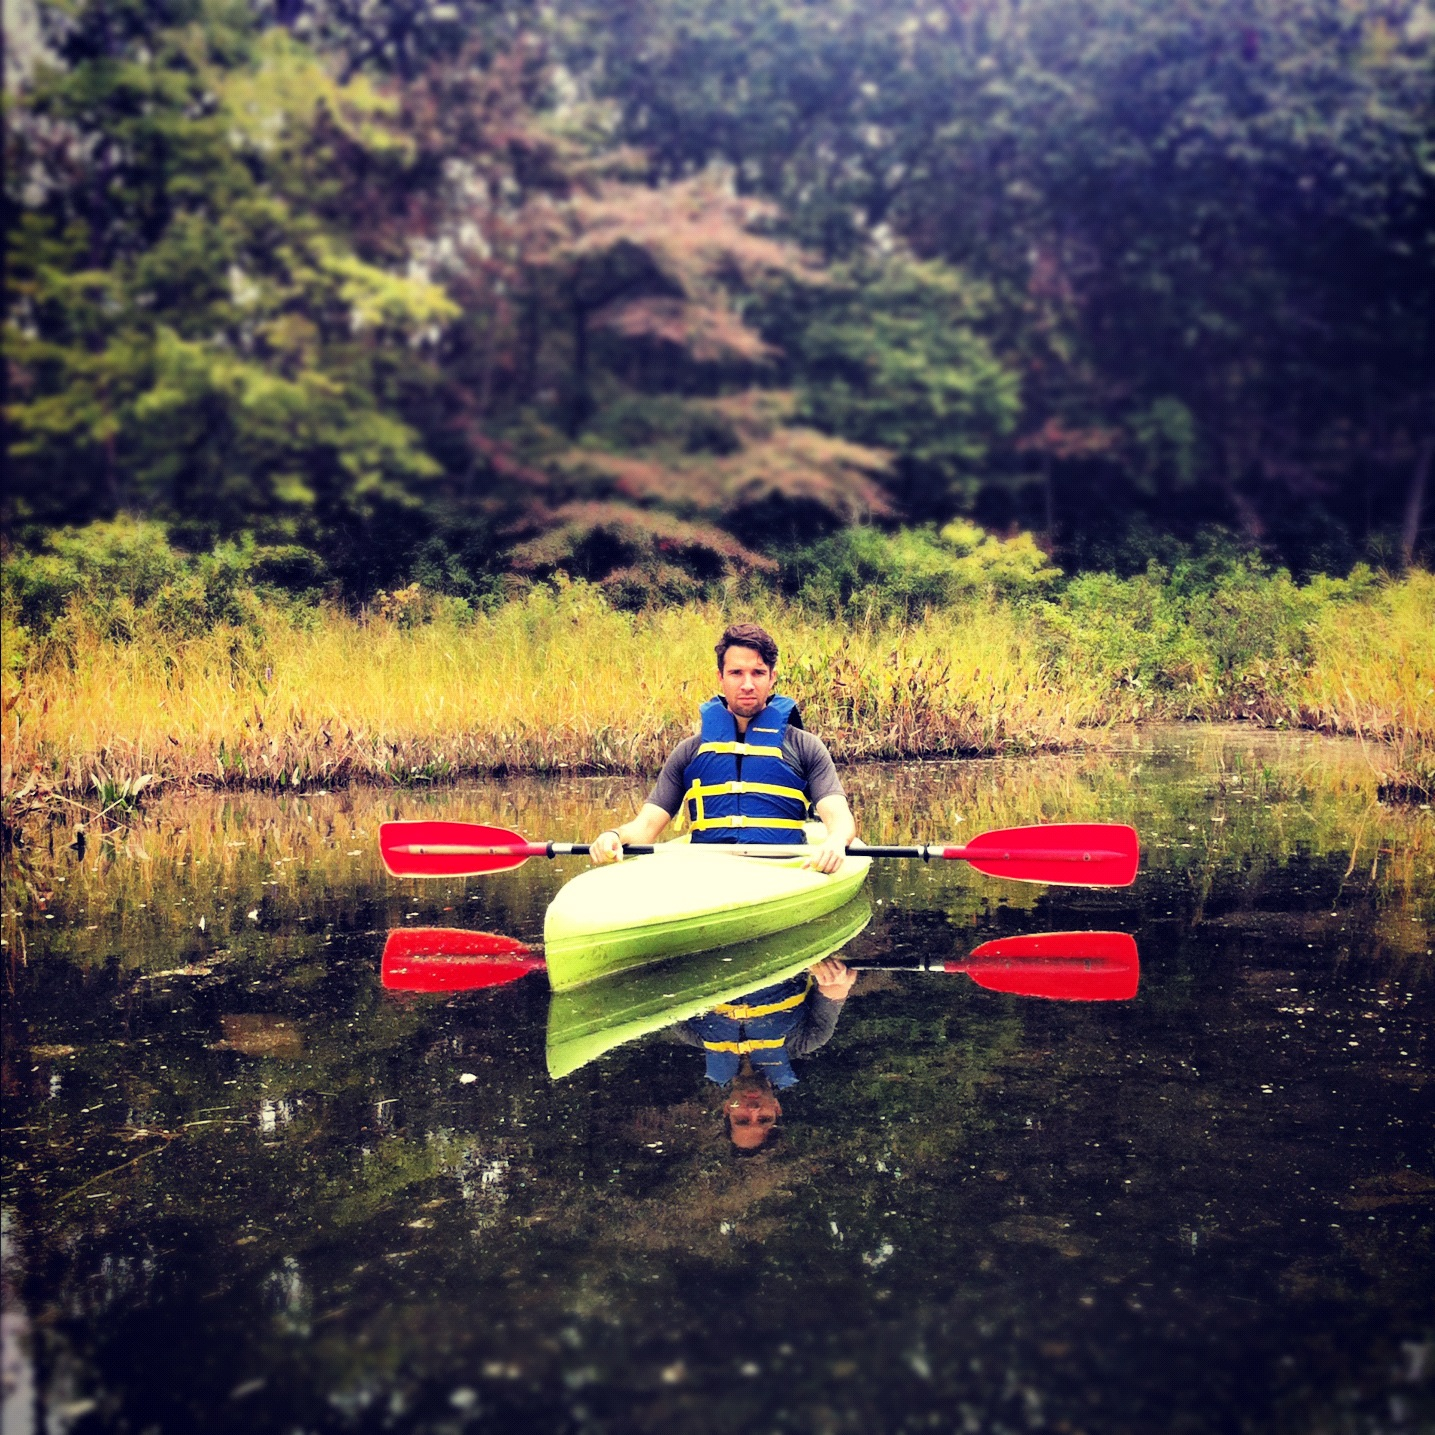 Kayak-Lake-Kayaking-Instagram